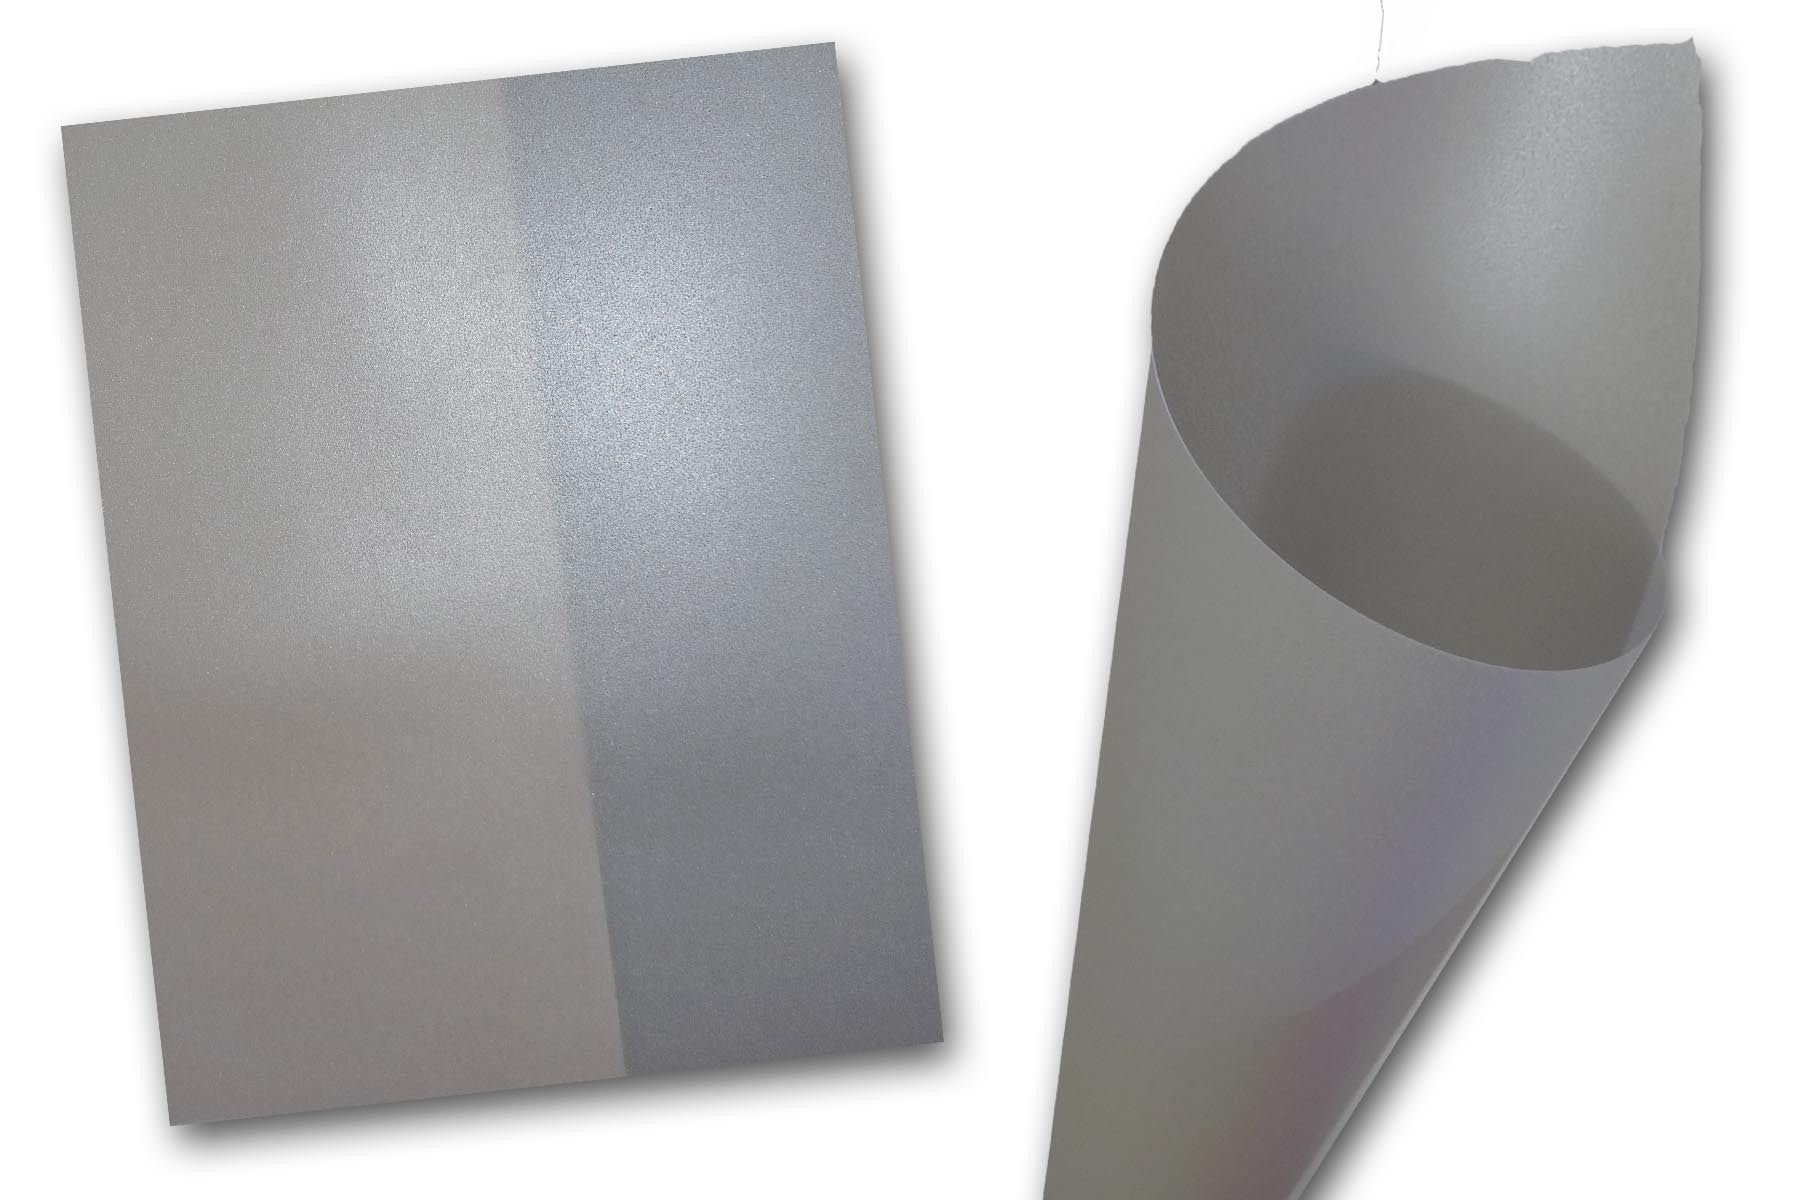 Shimmery silver translucent vellum card stock silver vellum card stock paper colourmoves